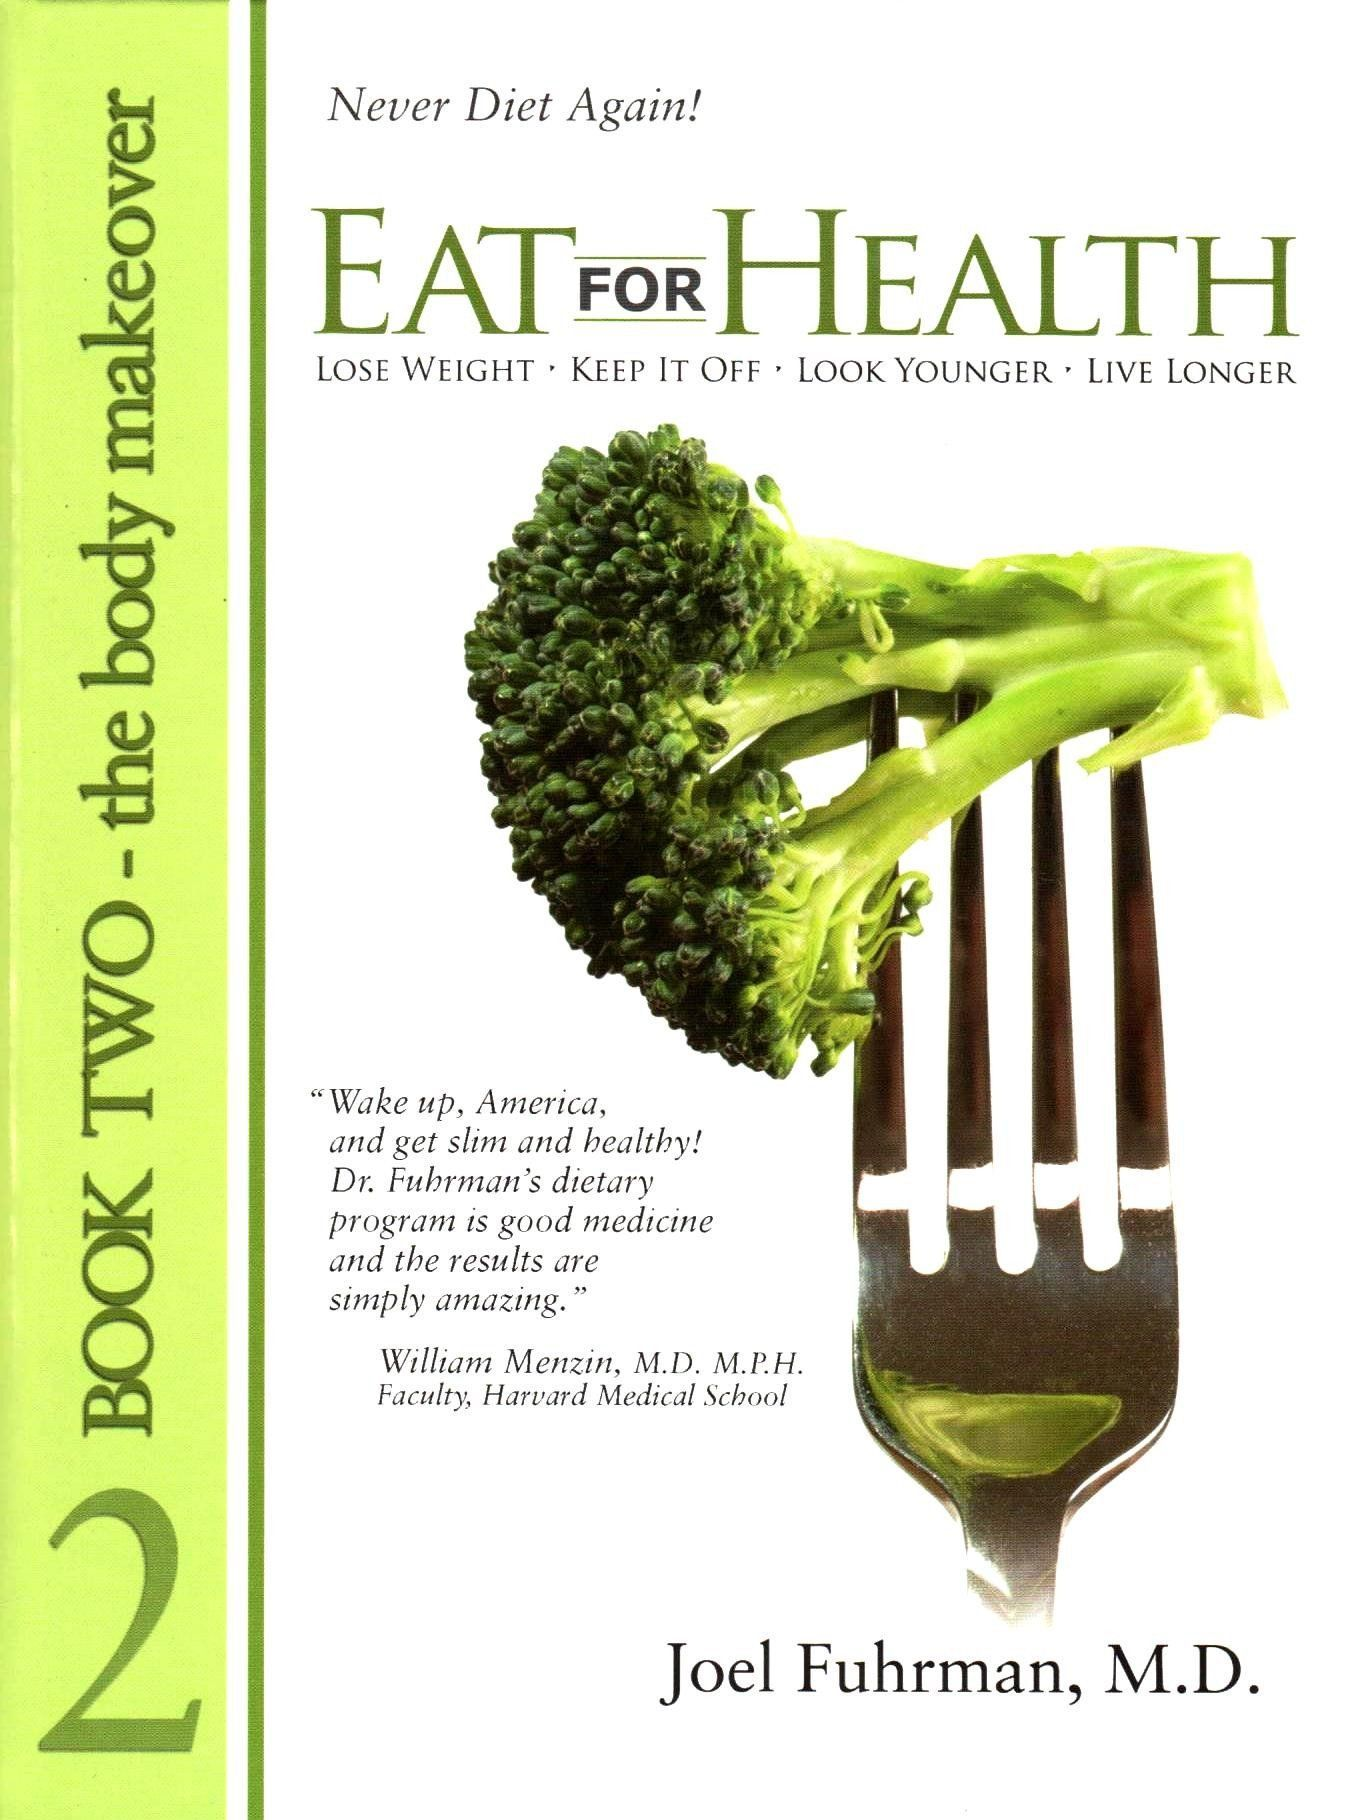 I need to lose weight fast diet plan picture 9